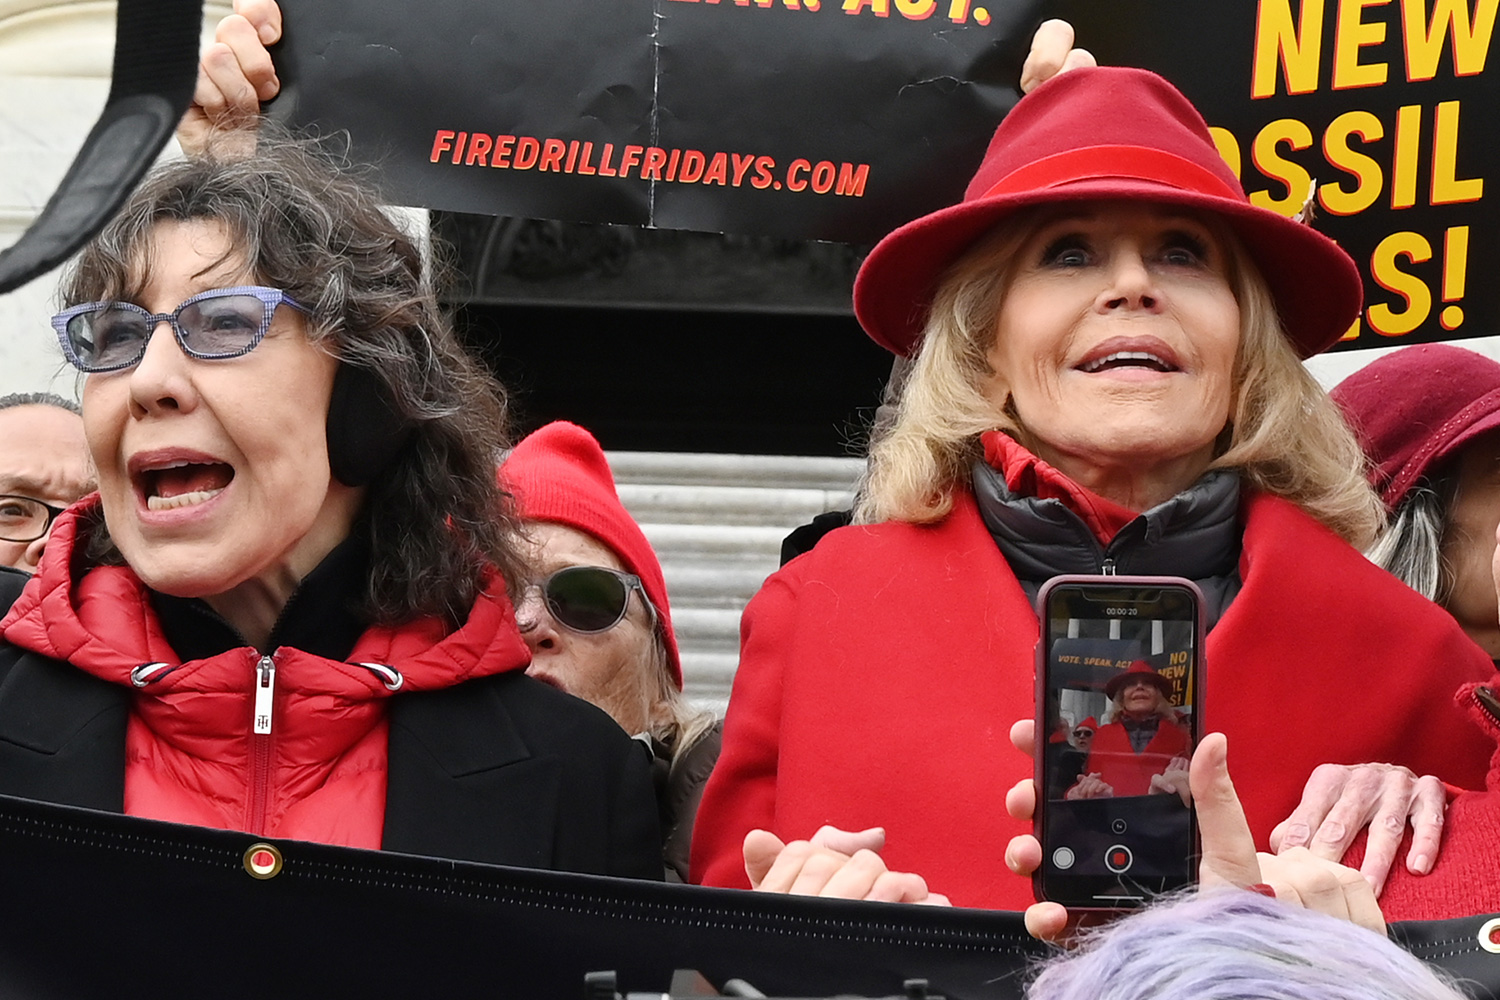 Lily Tomlin (L) and Jane Fonda hold hands as they lead a climate protest on the steps of the US Capitol in Washington, DC on December 27, 2019. - The rally marked the 12th consecutive Friday that Jane Fonda has led protests in Washington, DC. The protests call for an end to new fossil fuel exploration while this week's demonstration focused on the impact of climate change on the world's forests